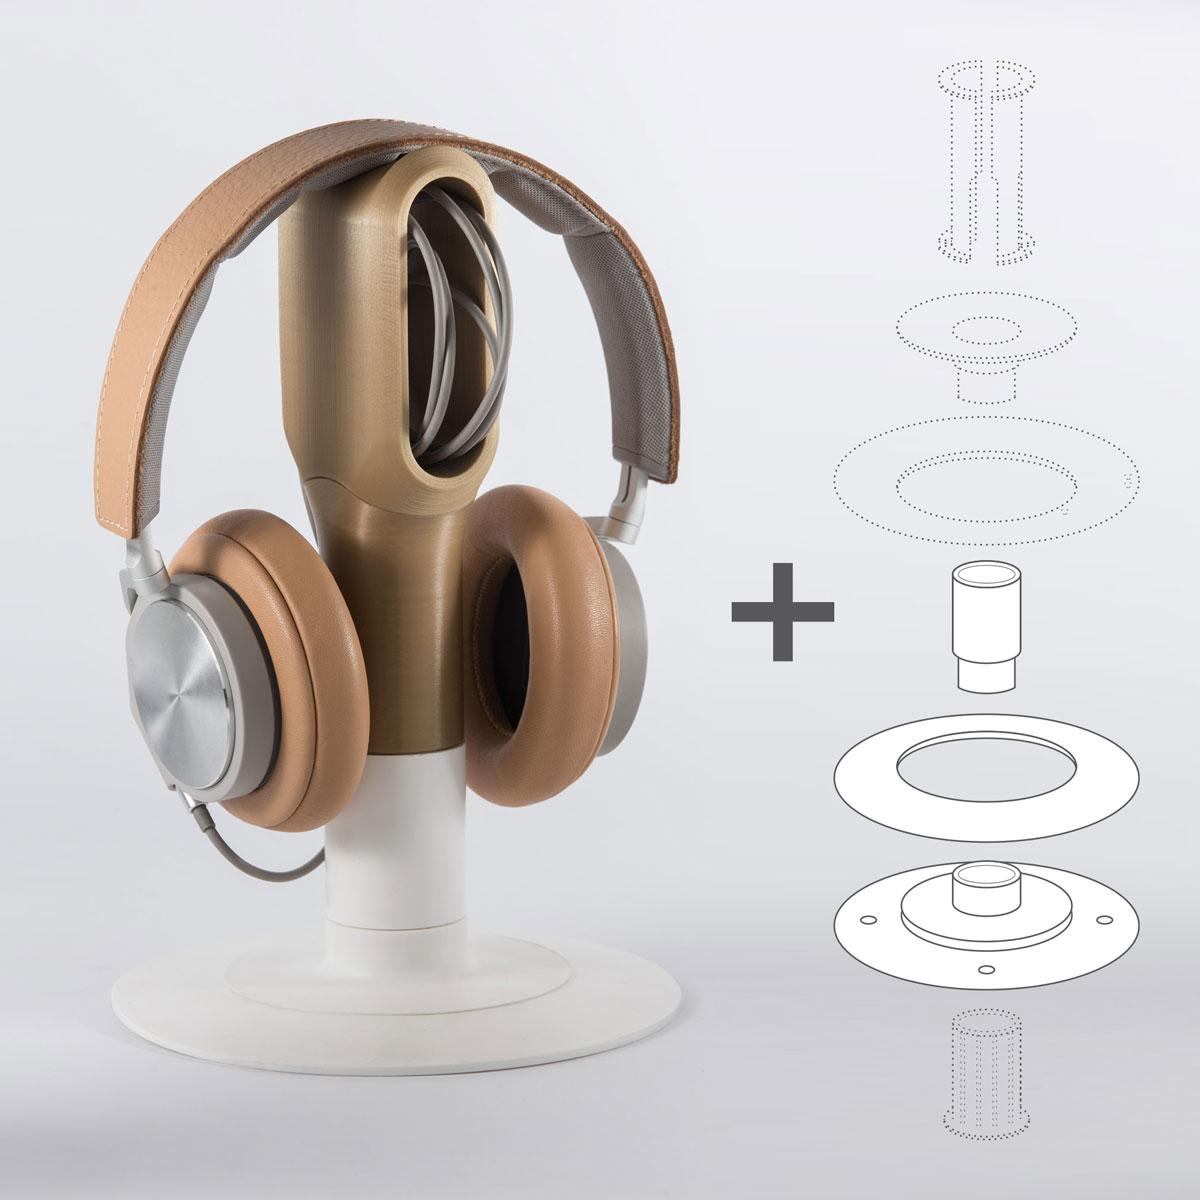 Headphones Holders Eumakers Launches Transformable Filament Spools That Turn